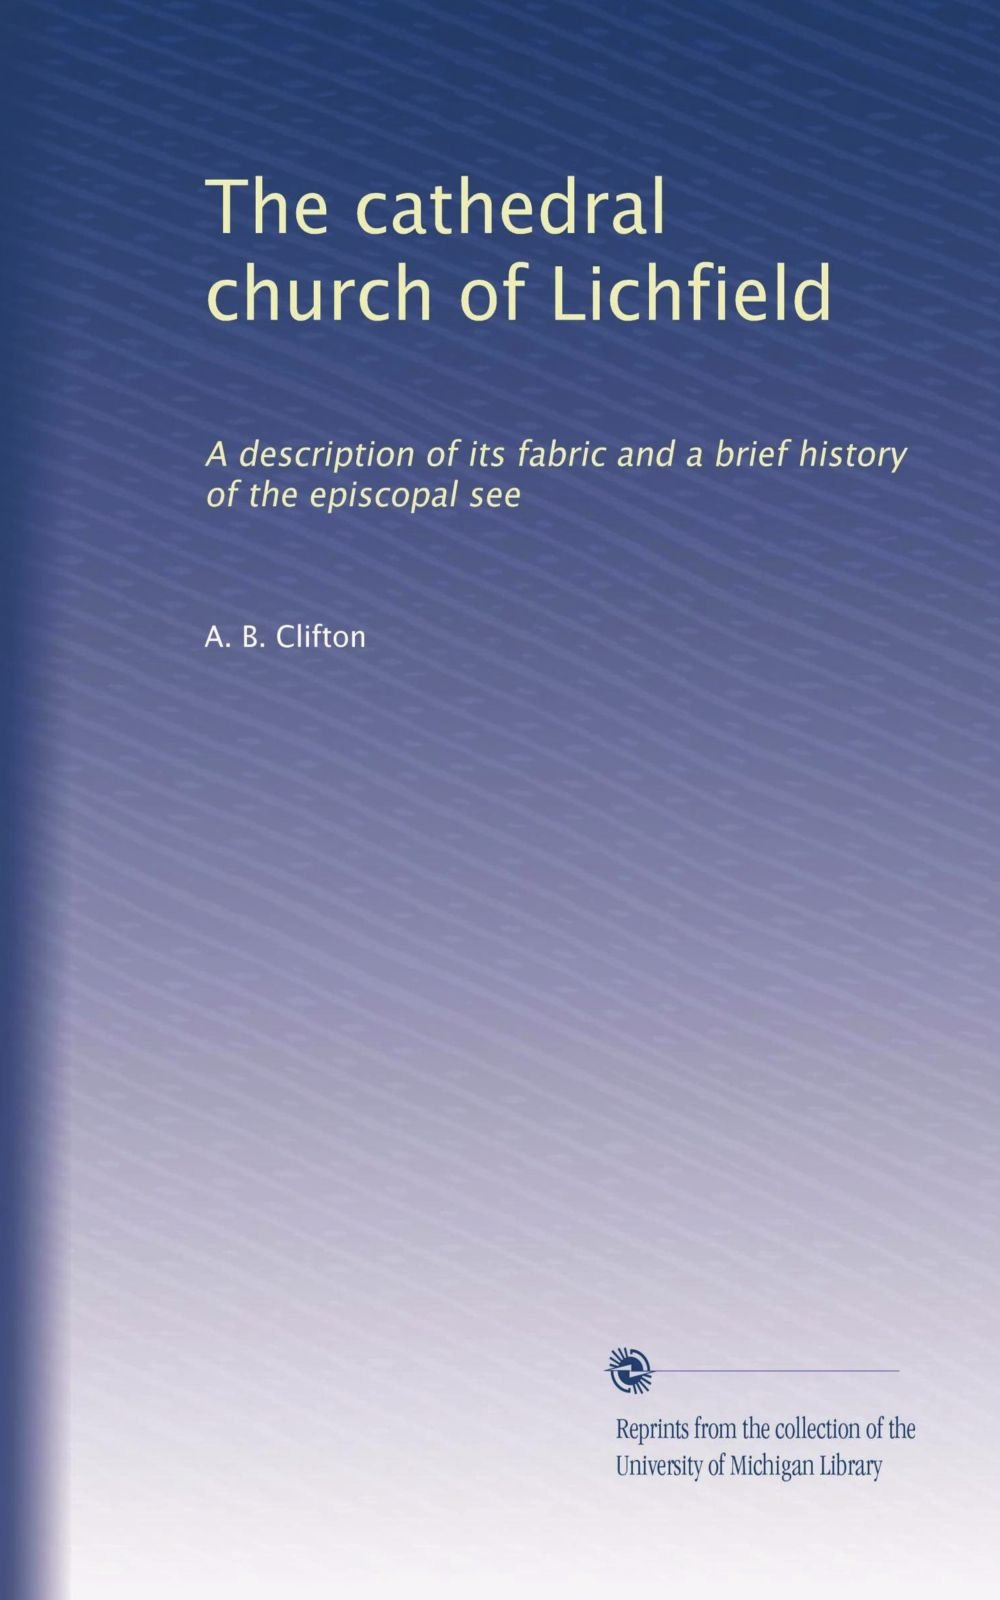 Download The cathedral church of Lichfield: A description of its fabric and a brief history of the episcopal see pdf epub